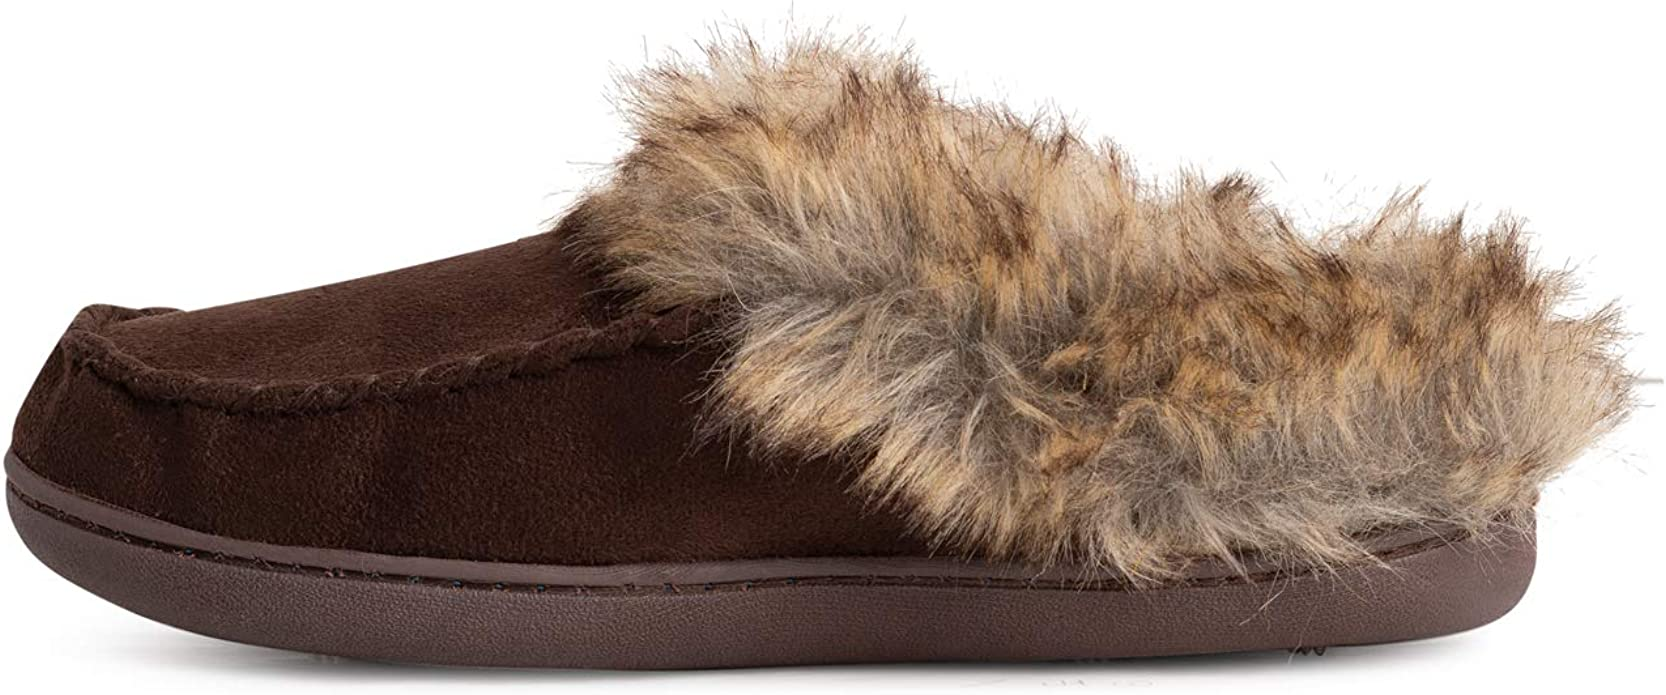 Memorygou Womens Moccasins Slippers Fur Lined Slip On Suede Indoor Outdoor Winter Shoes Non-Slip Green US 10